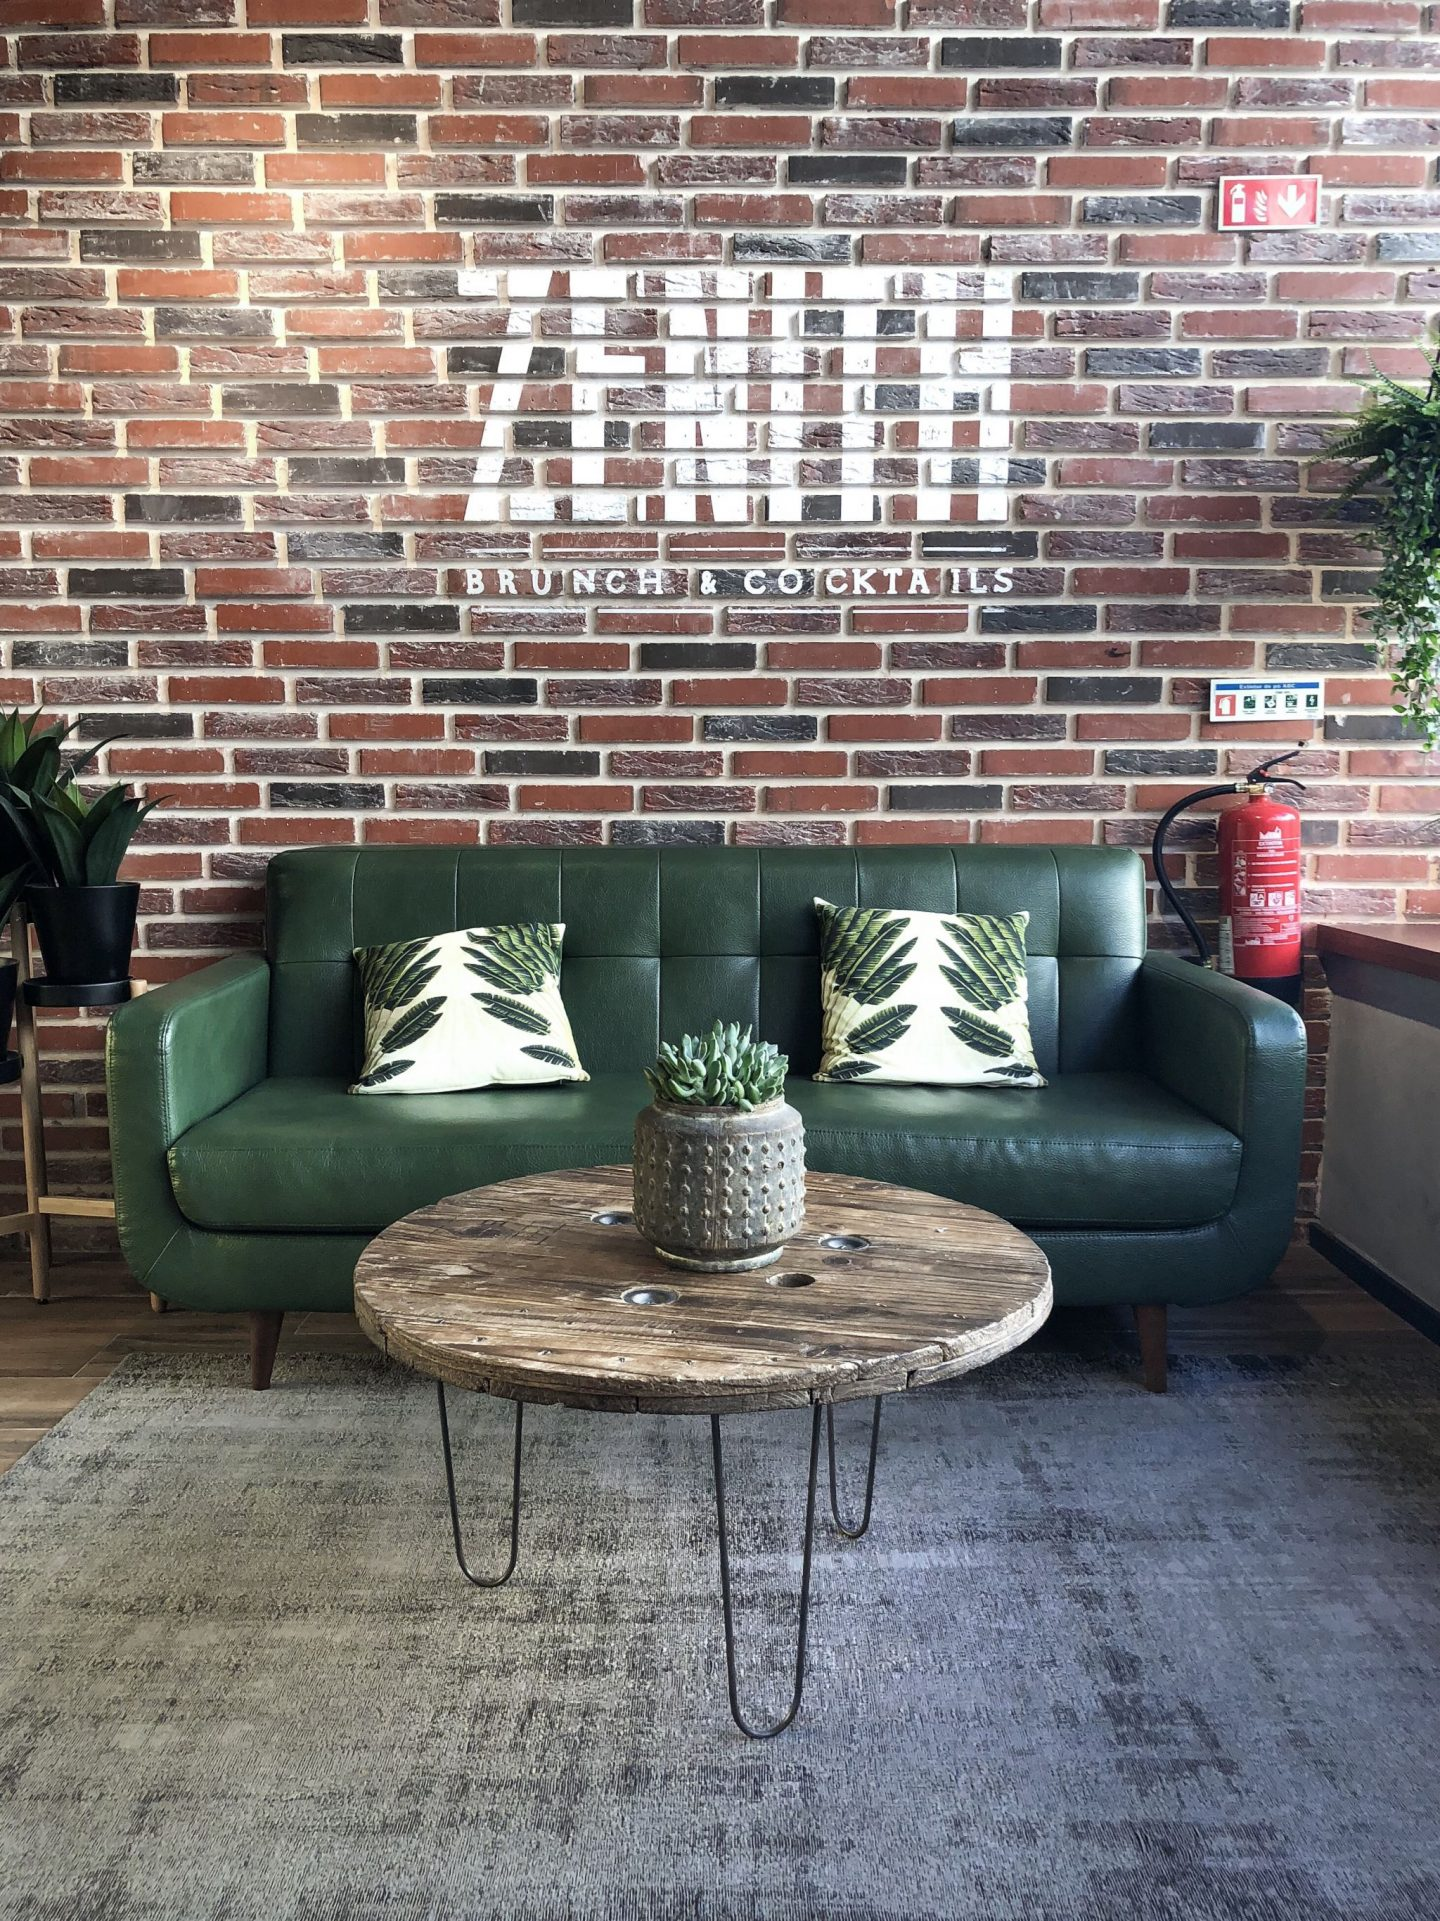 Best of Lisbon – Zenith Brunch & Cocktails